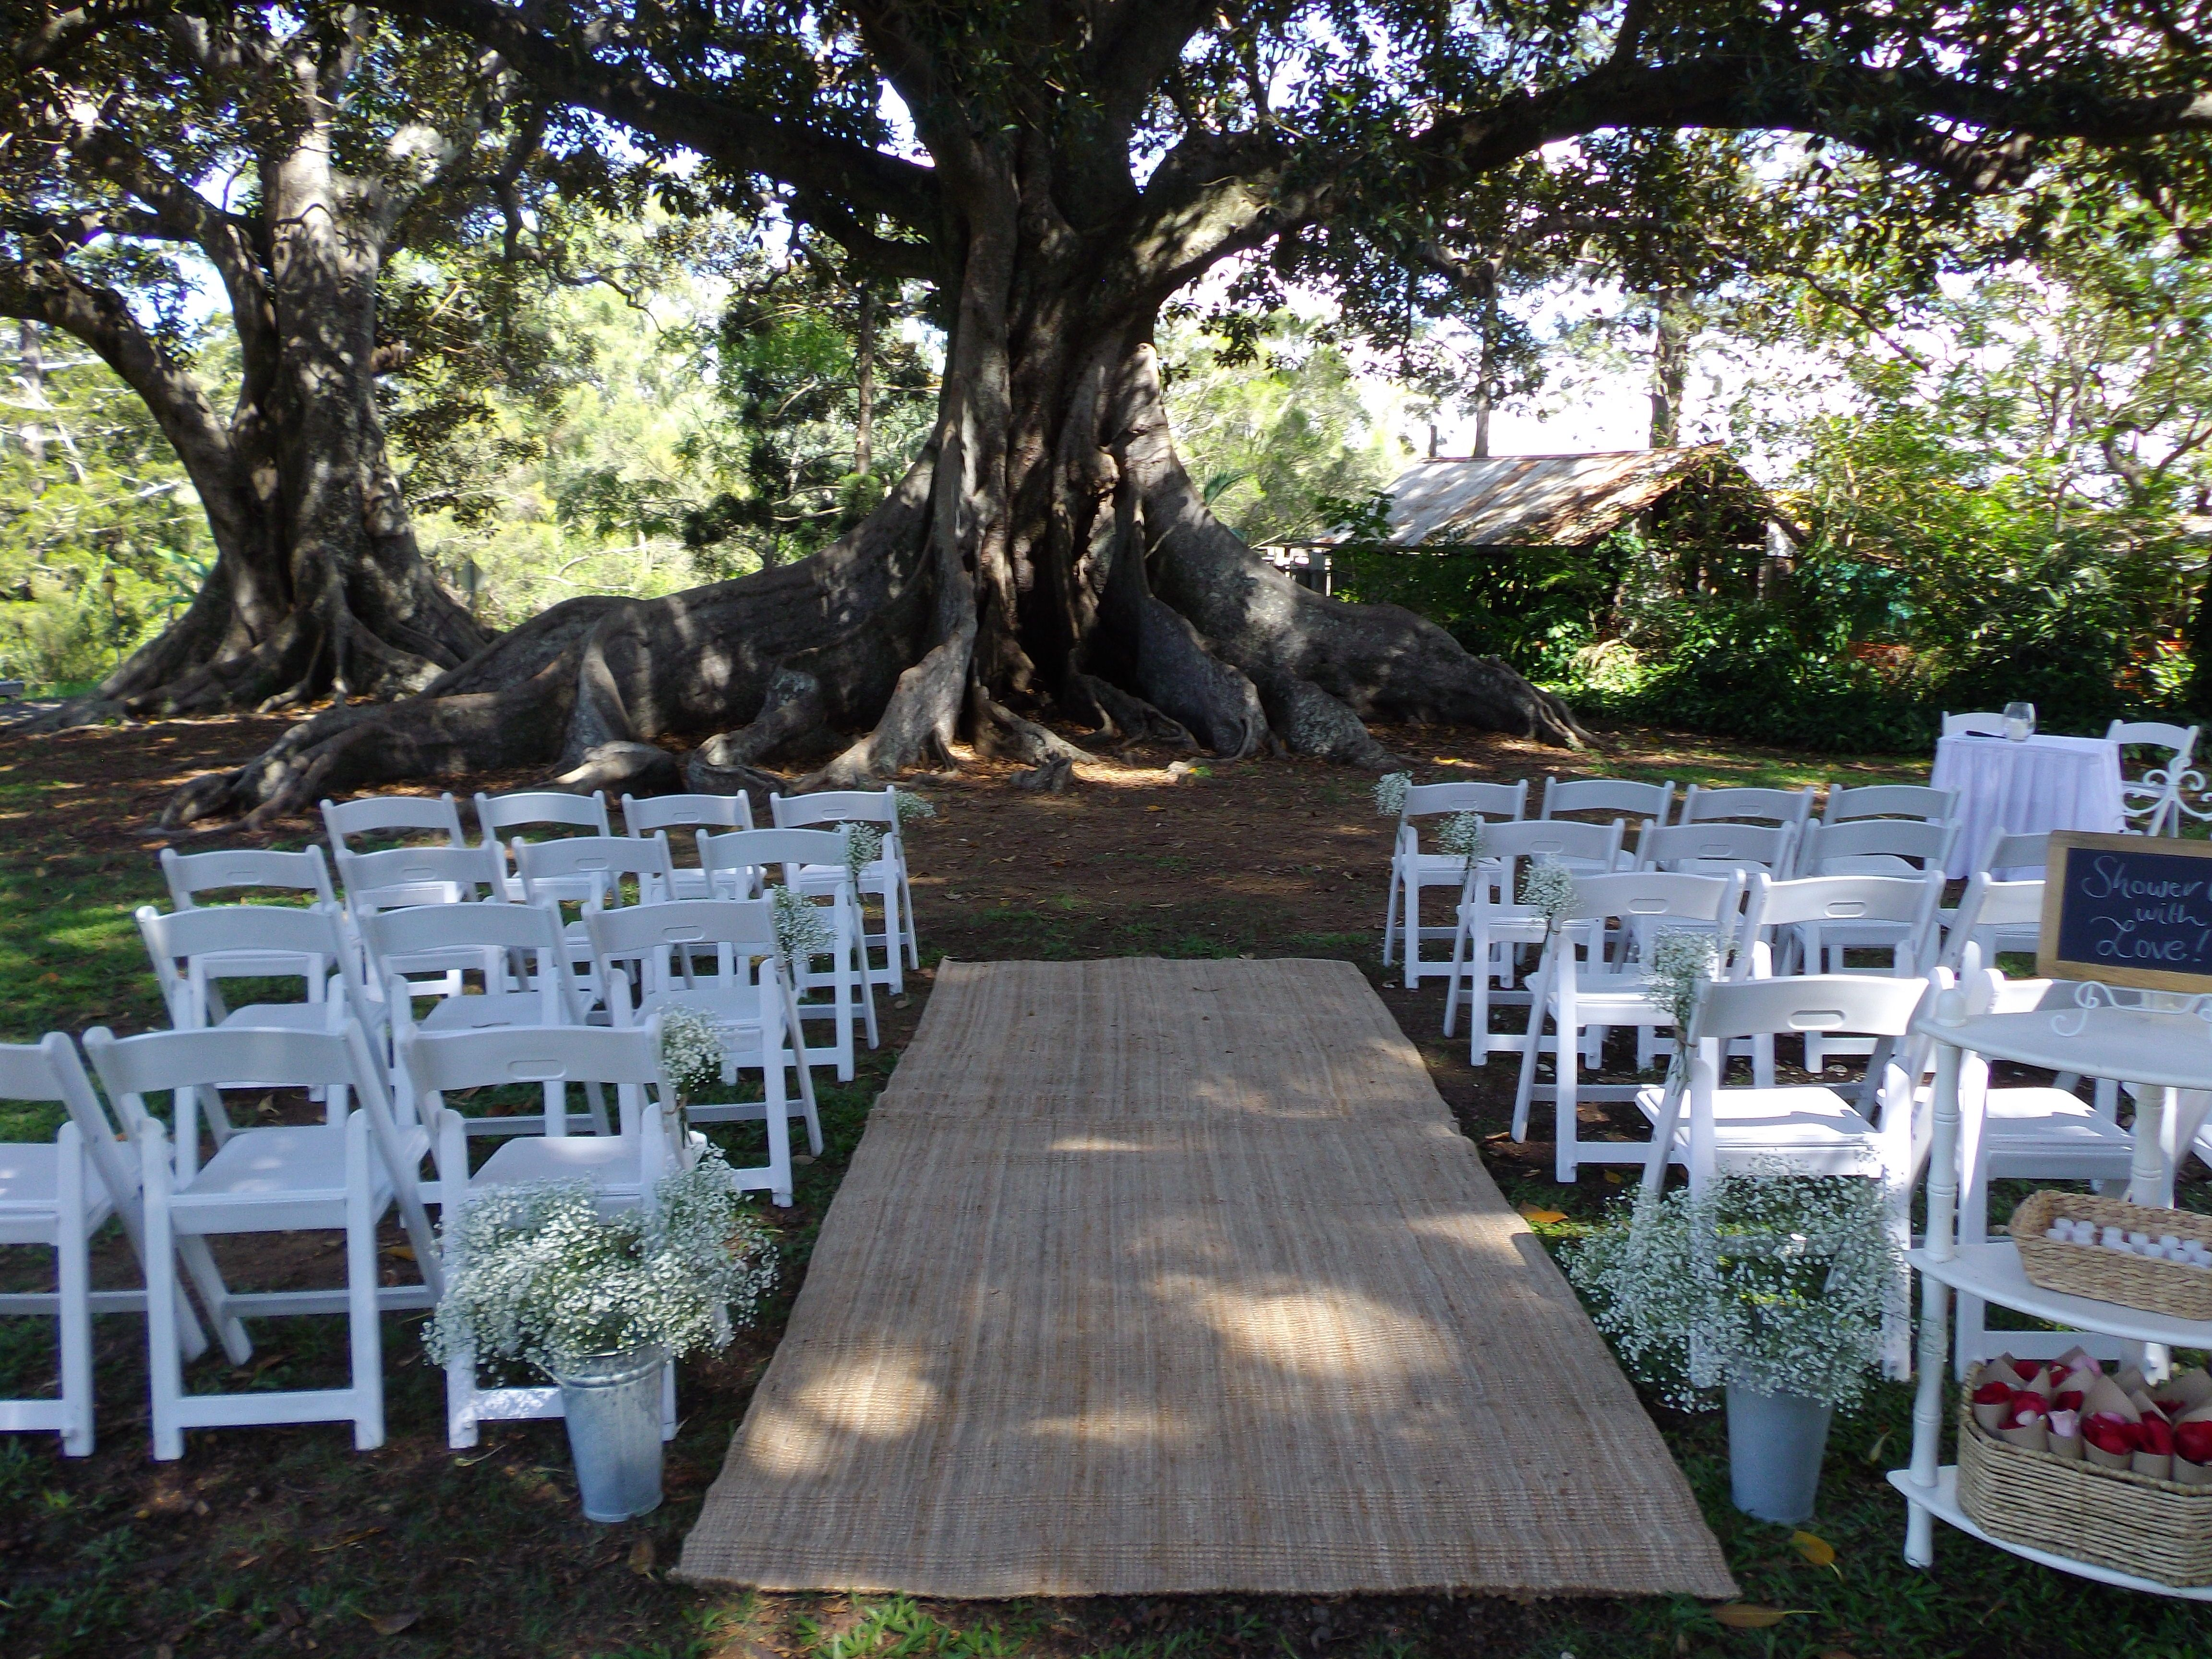 best outdoor wedding venues perth%0A Old Petrie Town Wedding Ceremony Area Brisbane Celebrant Neal Foster The  Marriage Celebrant performs weddings here